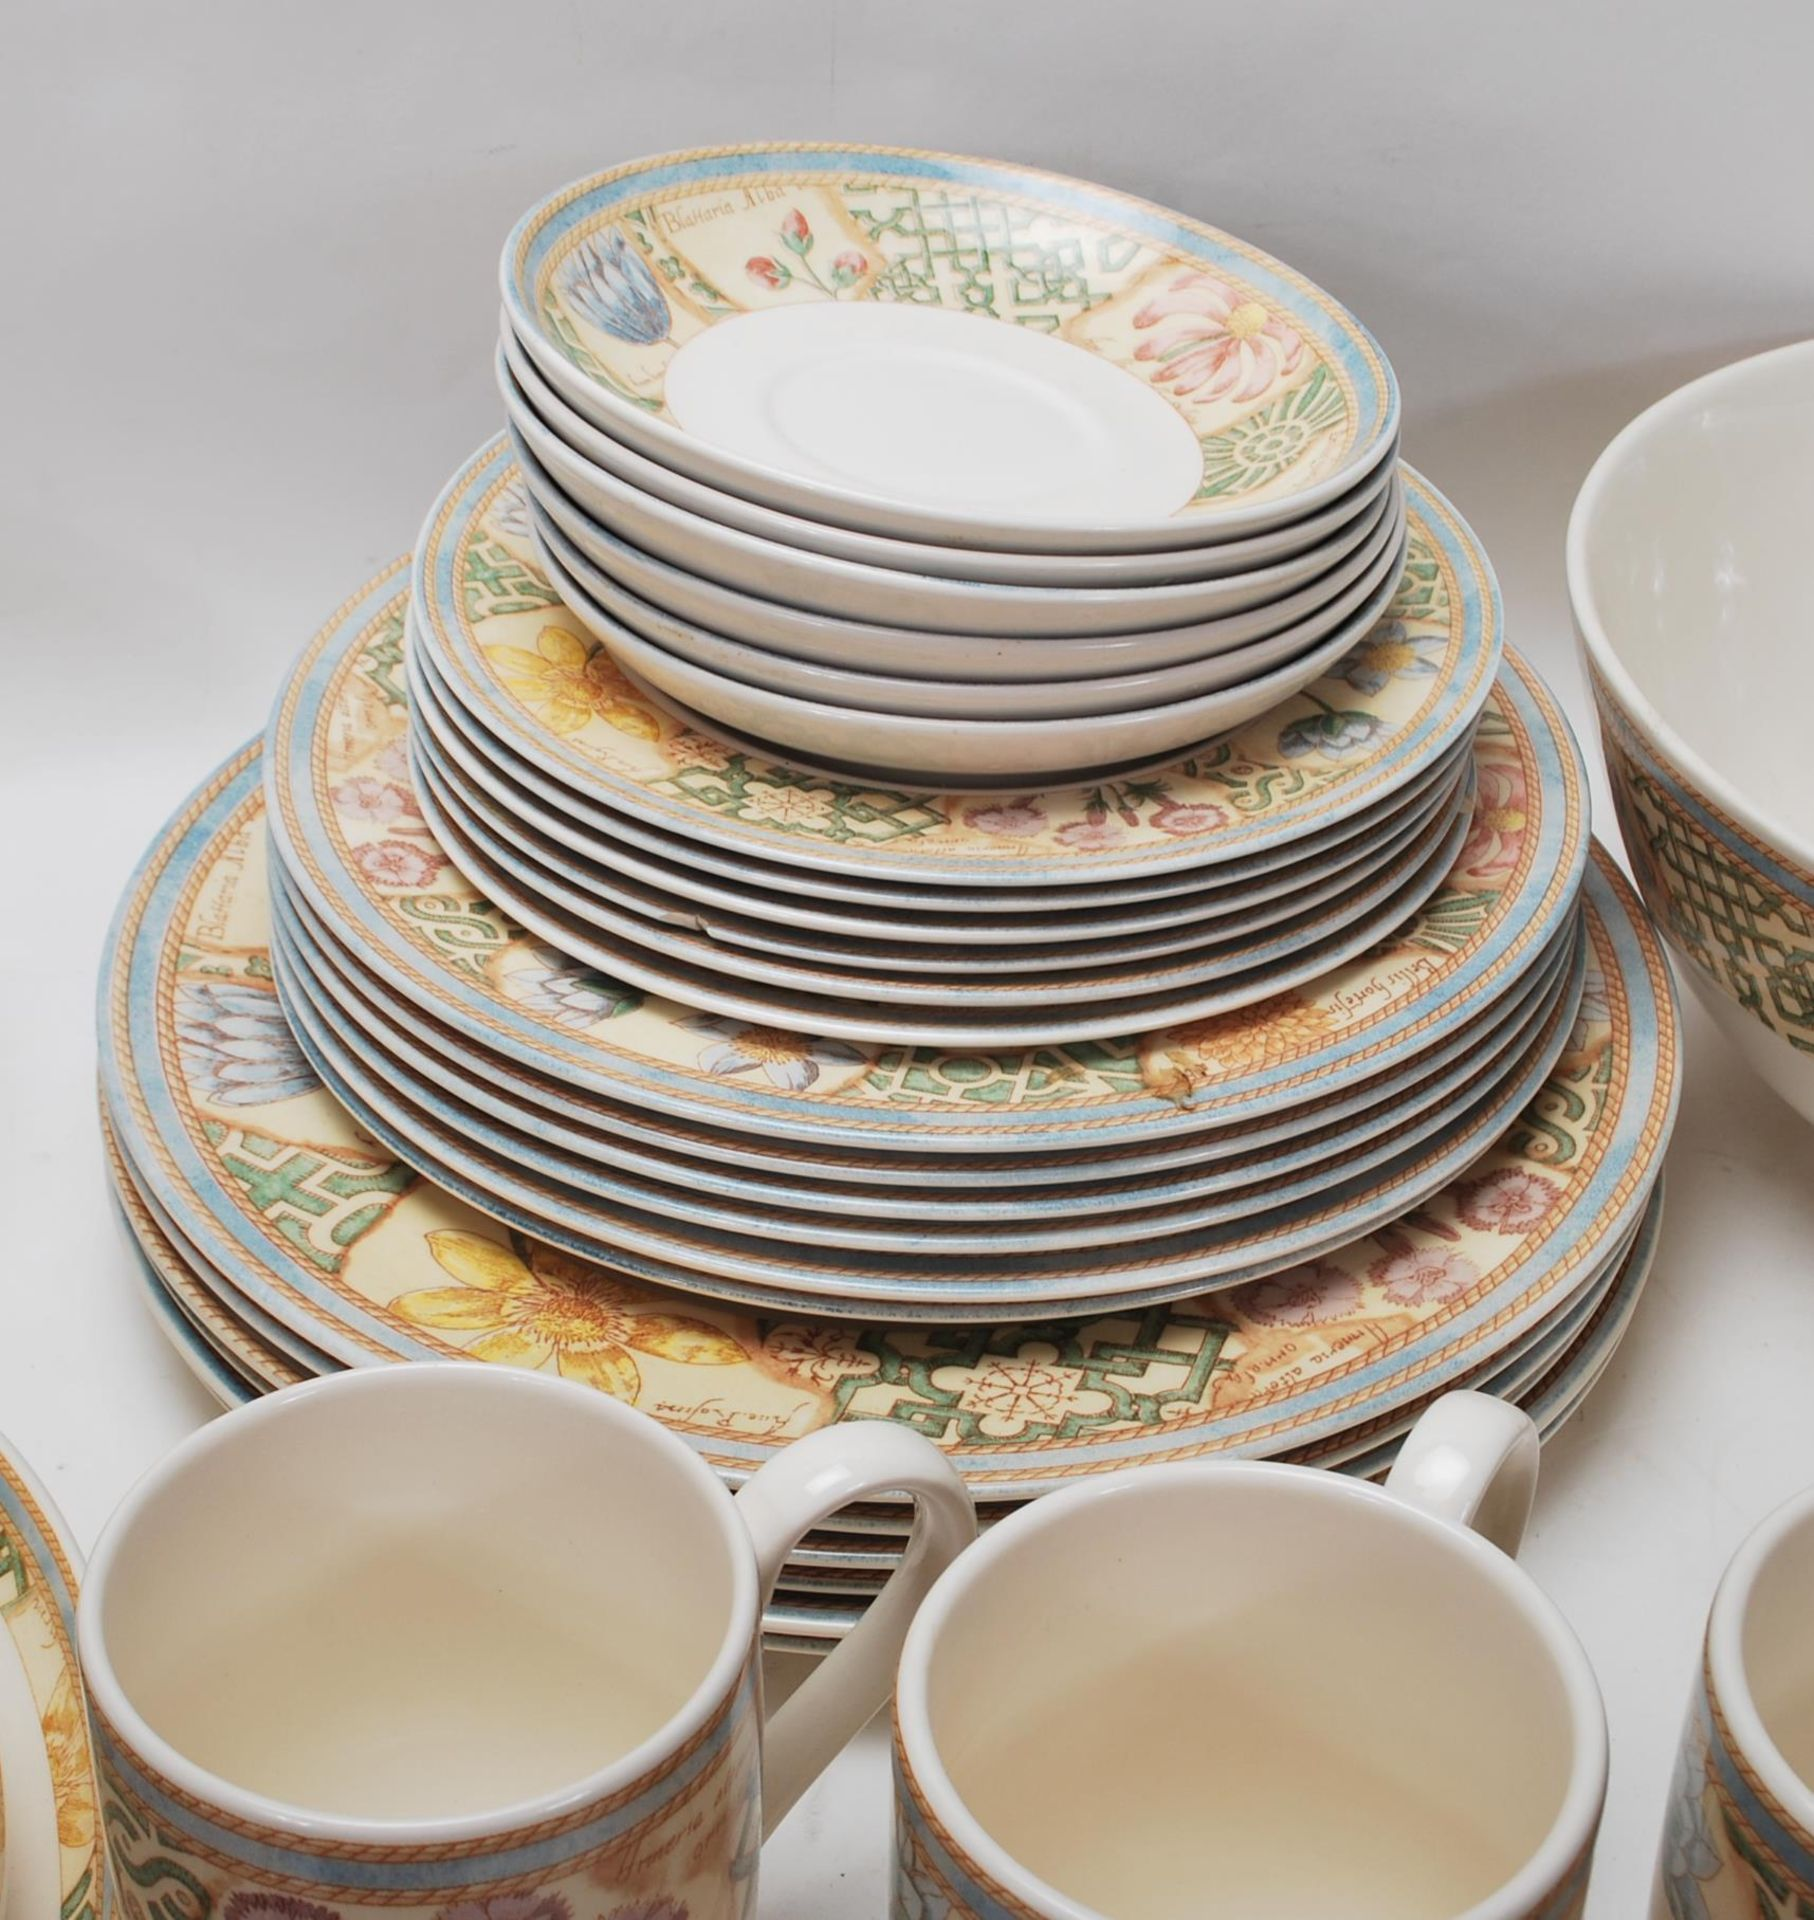 A LARGE 20TH CENTURY WEDGWOOD DINNER SERVICE WITH GRDEN MAZE PATTERN - Image 4 of 11